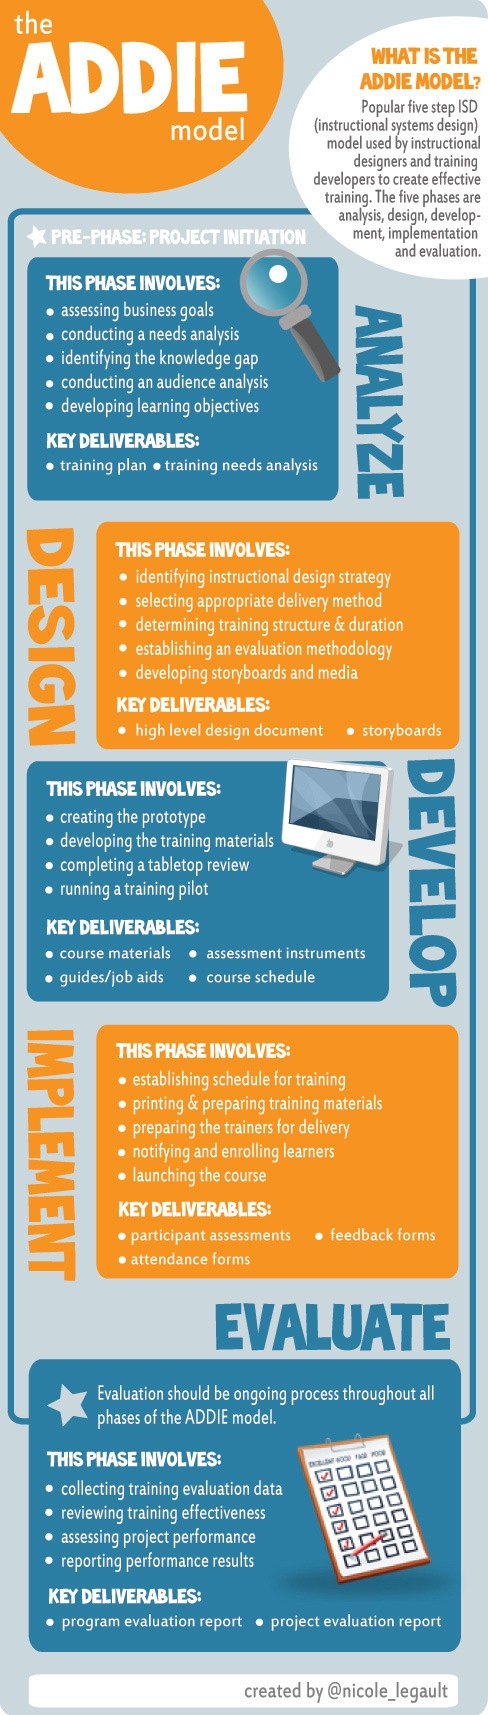 The-ADDIE-Instructional-Design-Model-Infographic